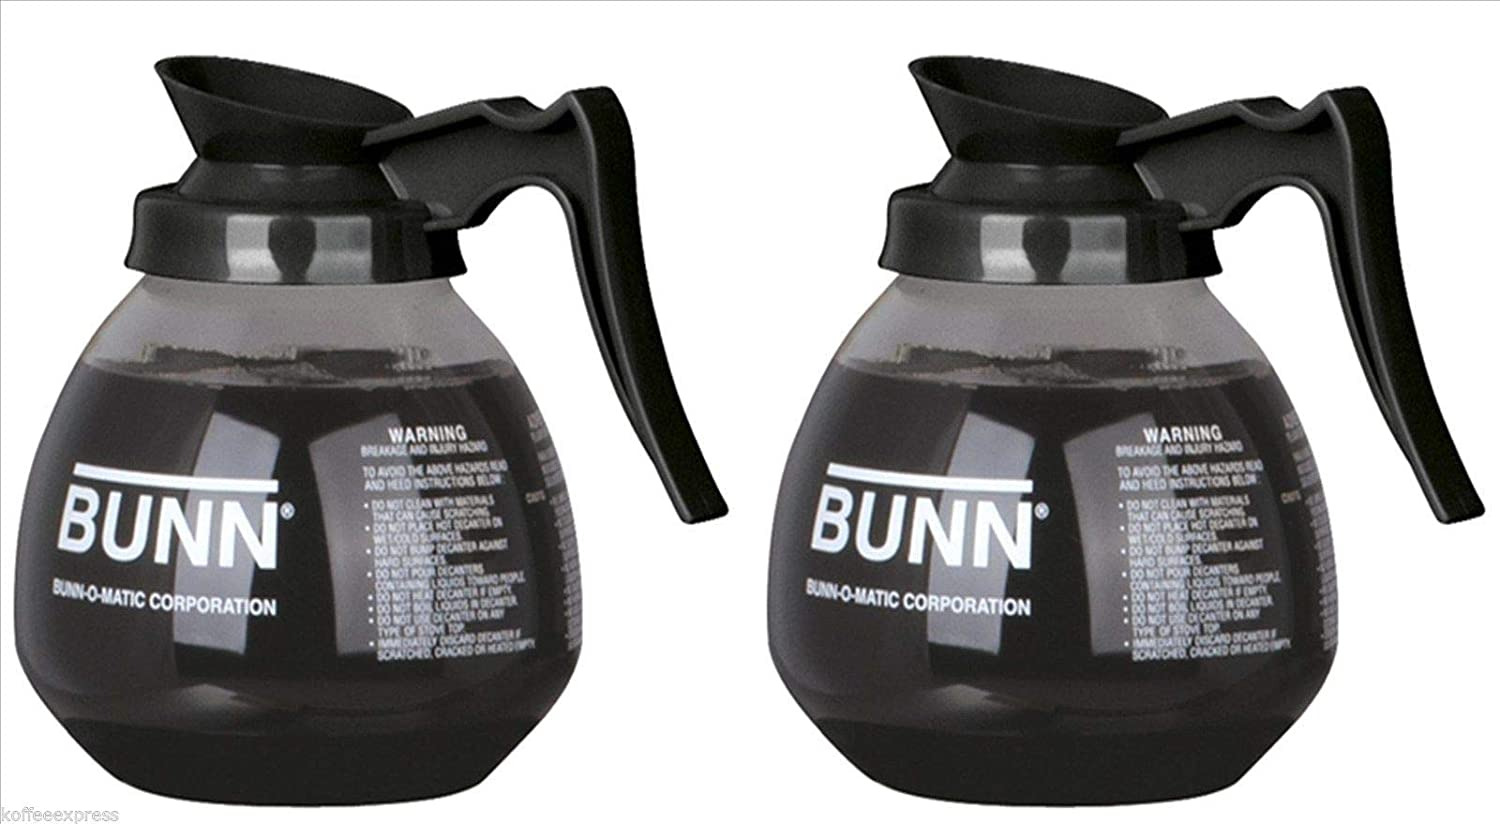 BUNN Glass Coffee Pot Decanter/Carafe, Regular, 12 cup Capacity, Black, Set of 2